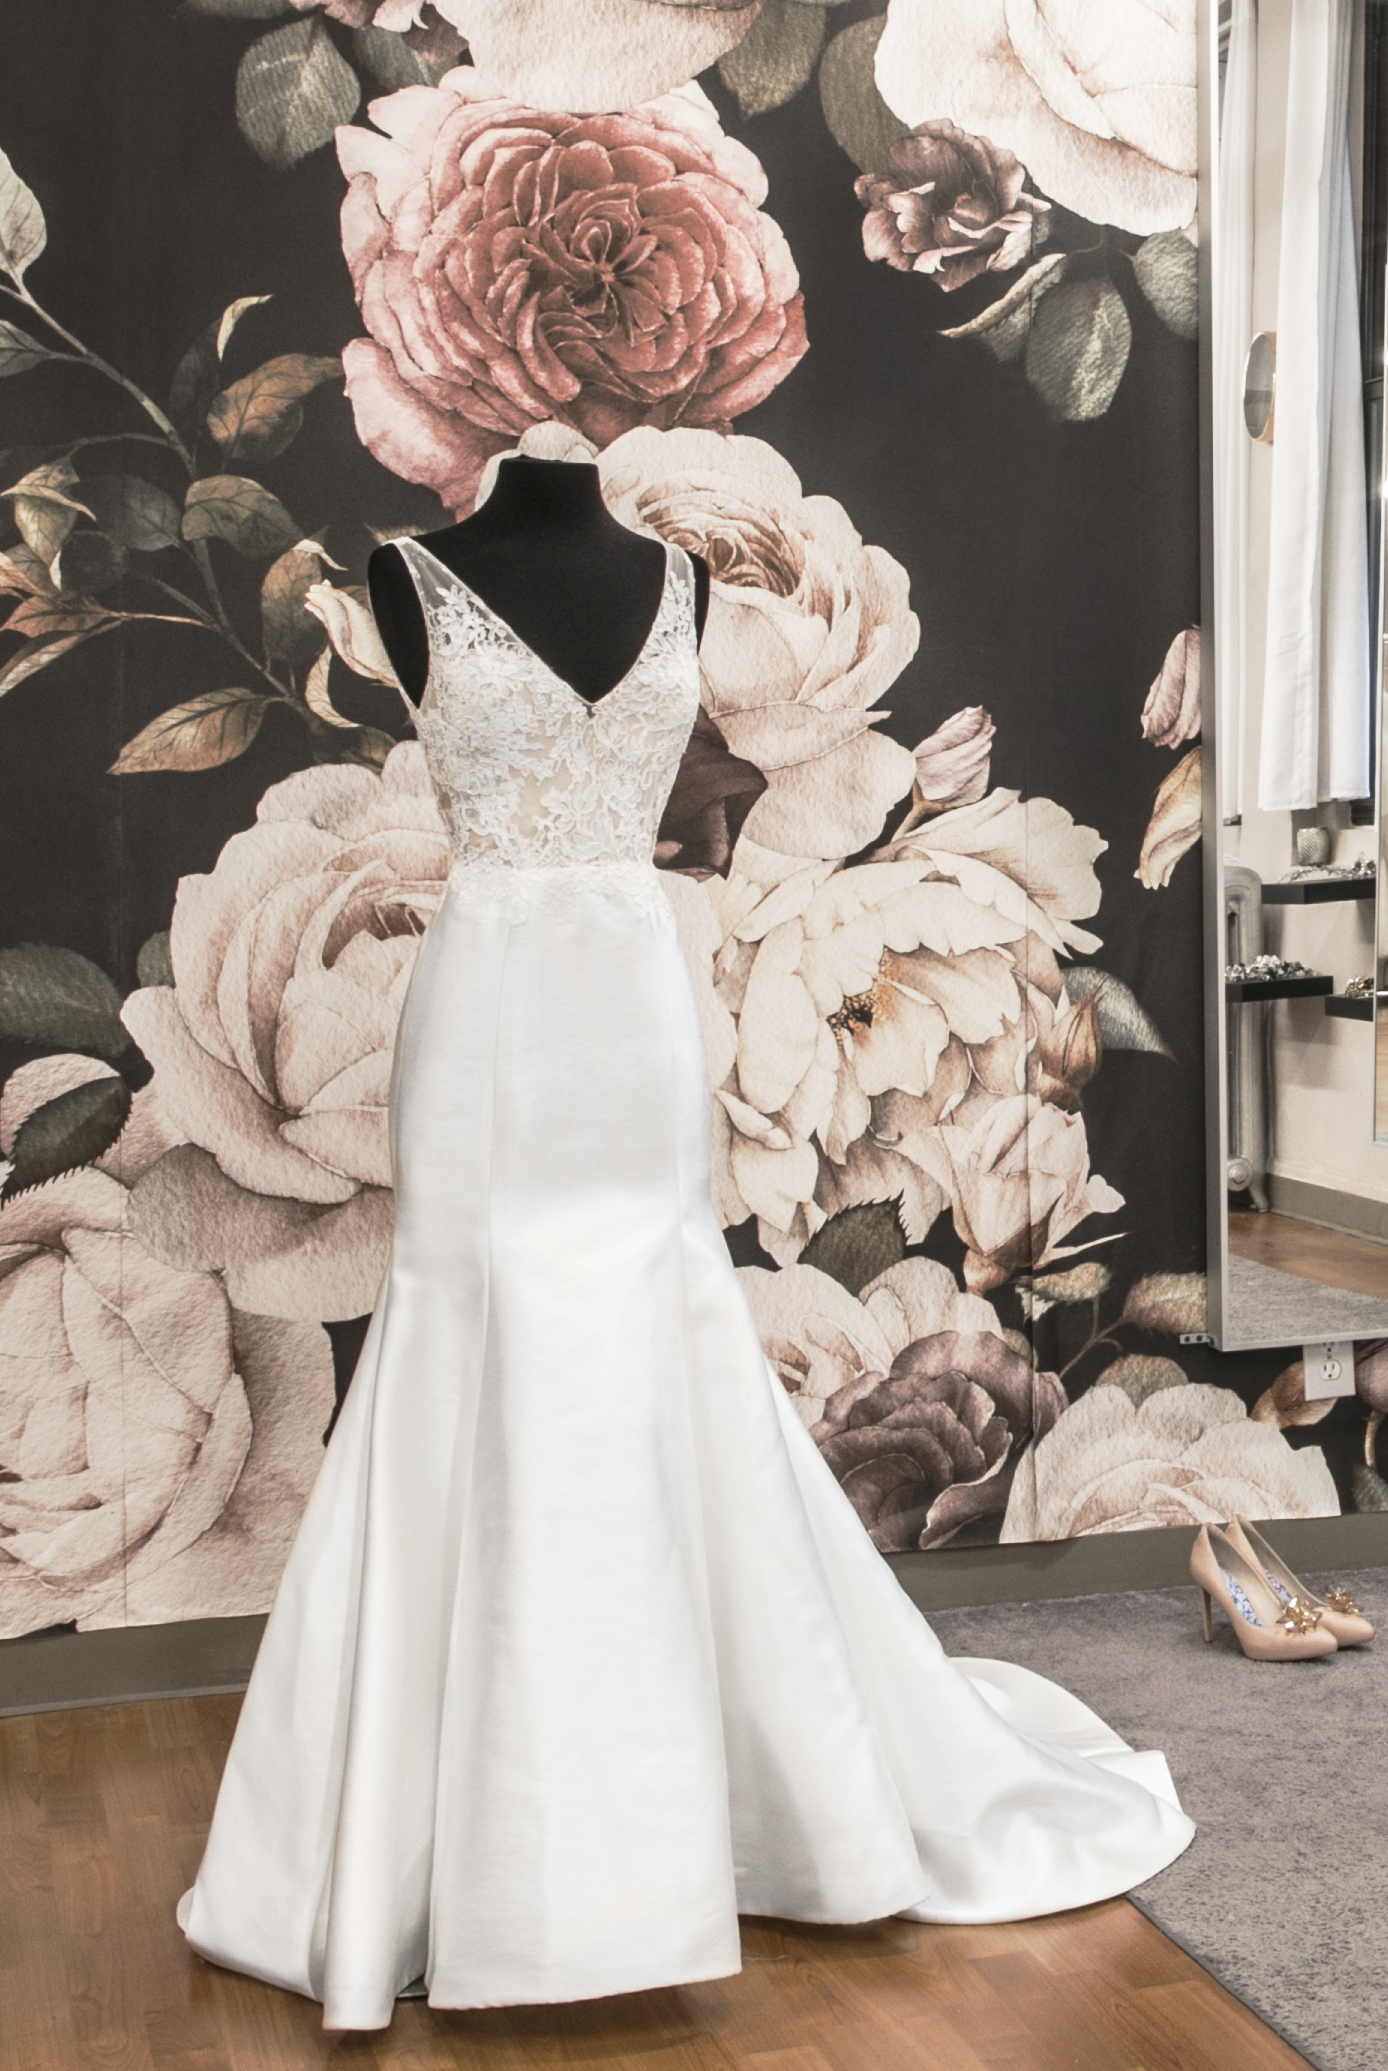 Wedding Dress Cleaning And Preservation.Wedding Dress Cleaning Preservation Our Story Bridal